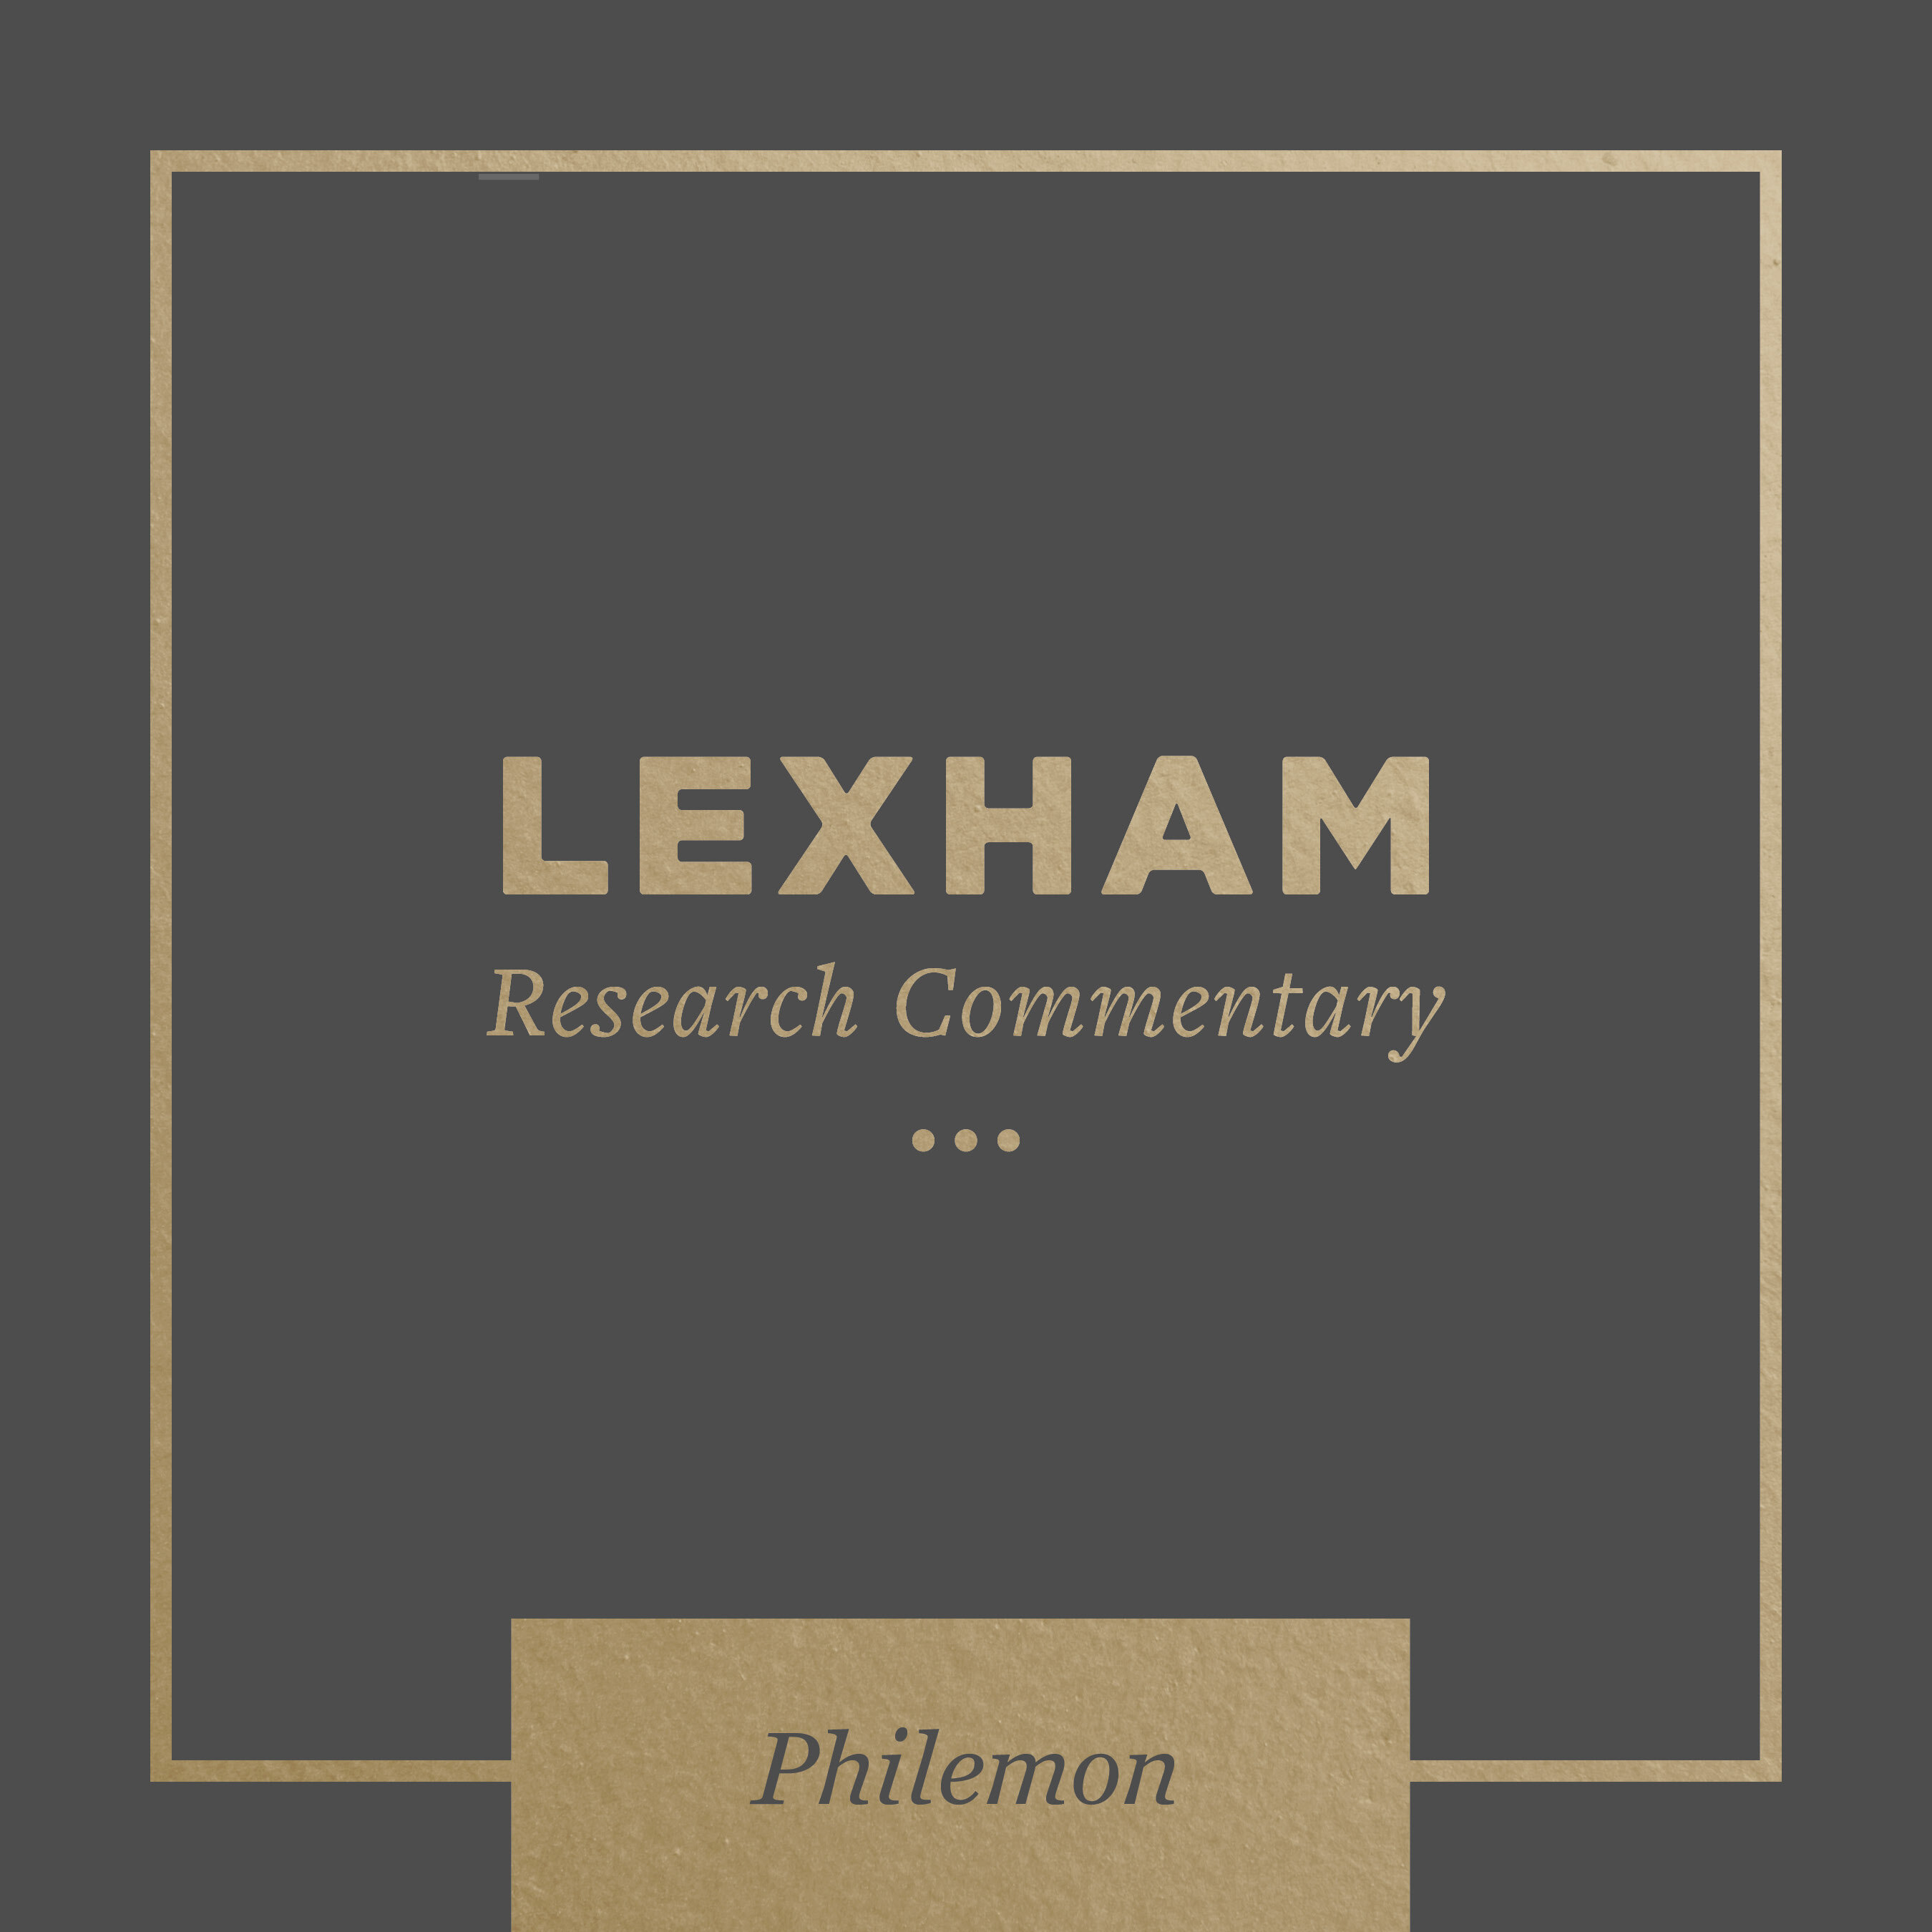 Lexham Research Commentary: Philemon